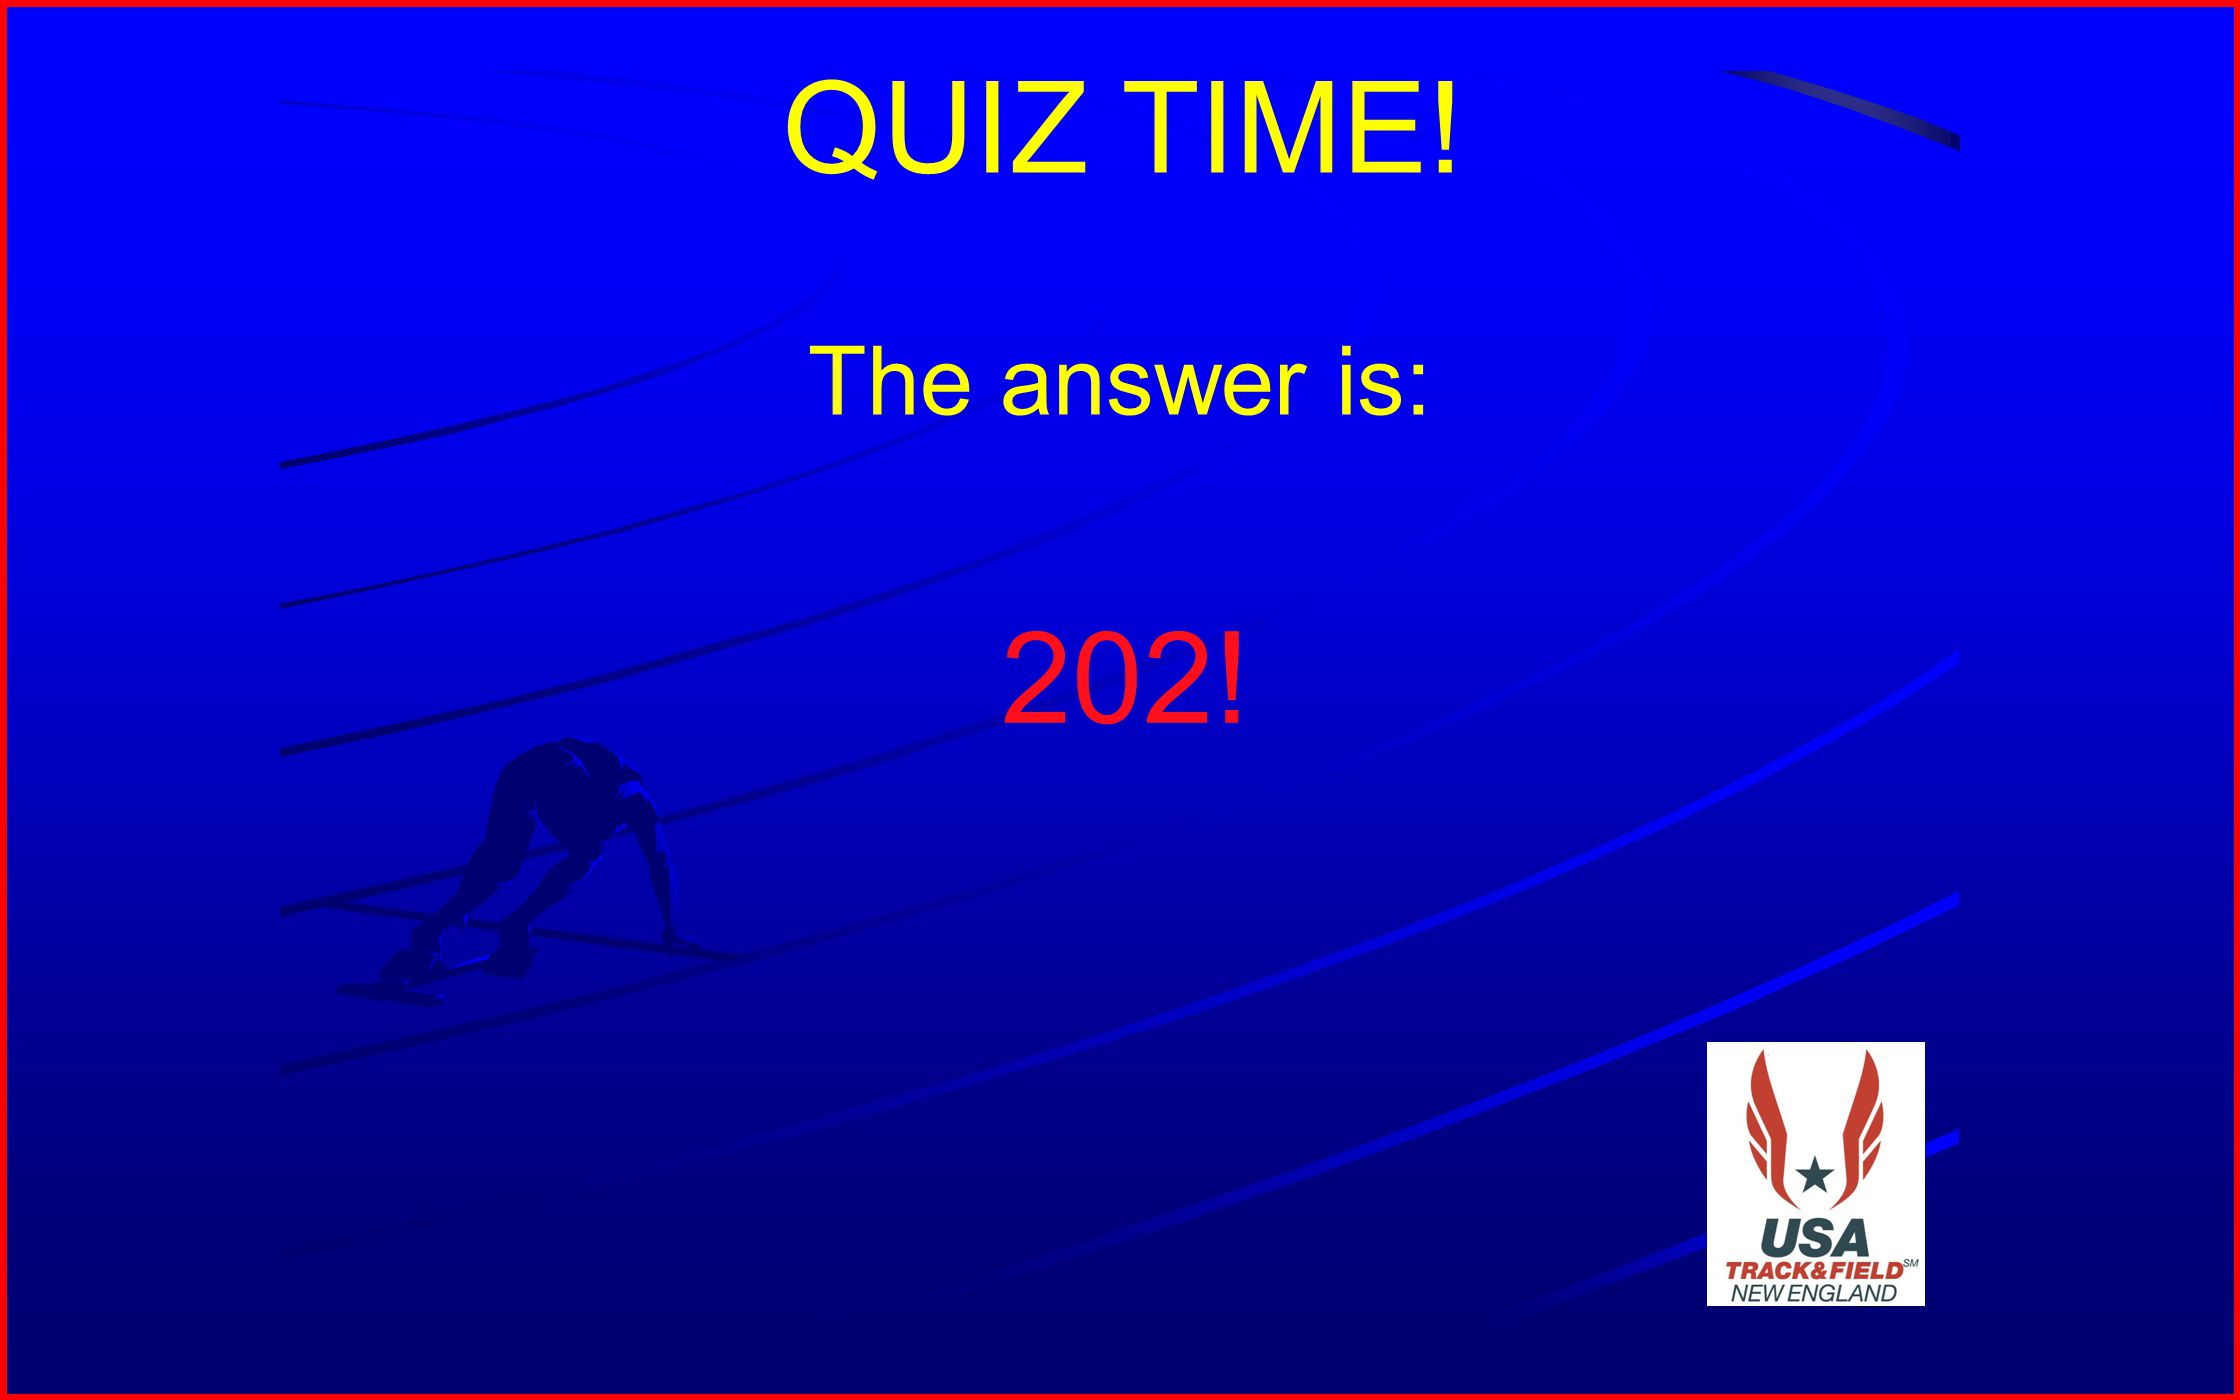 15 QUIZ TIME! The answer is: 202!